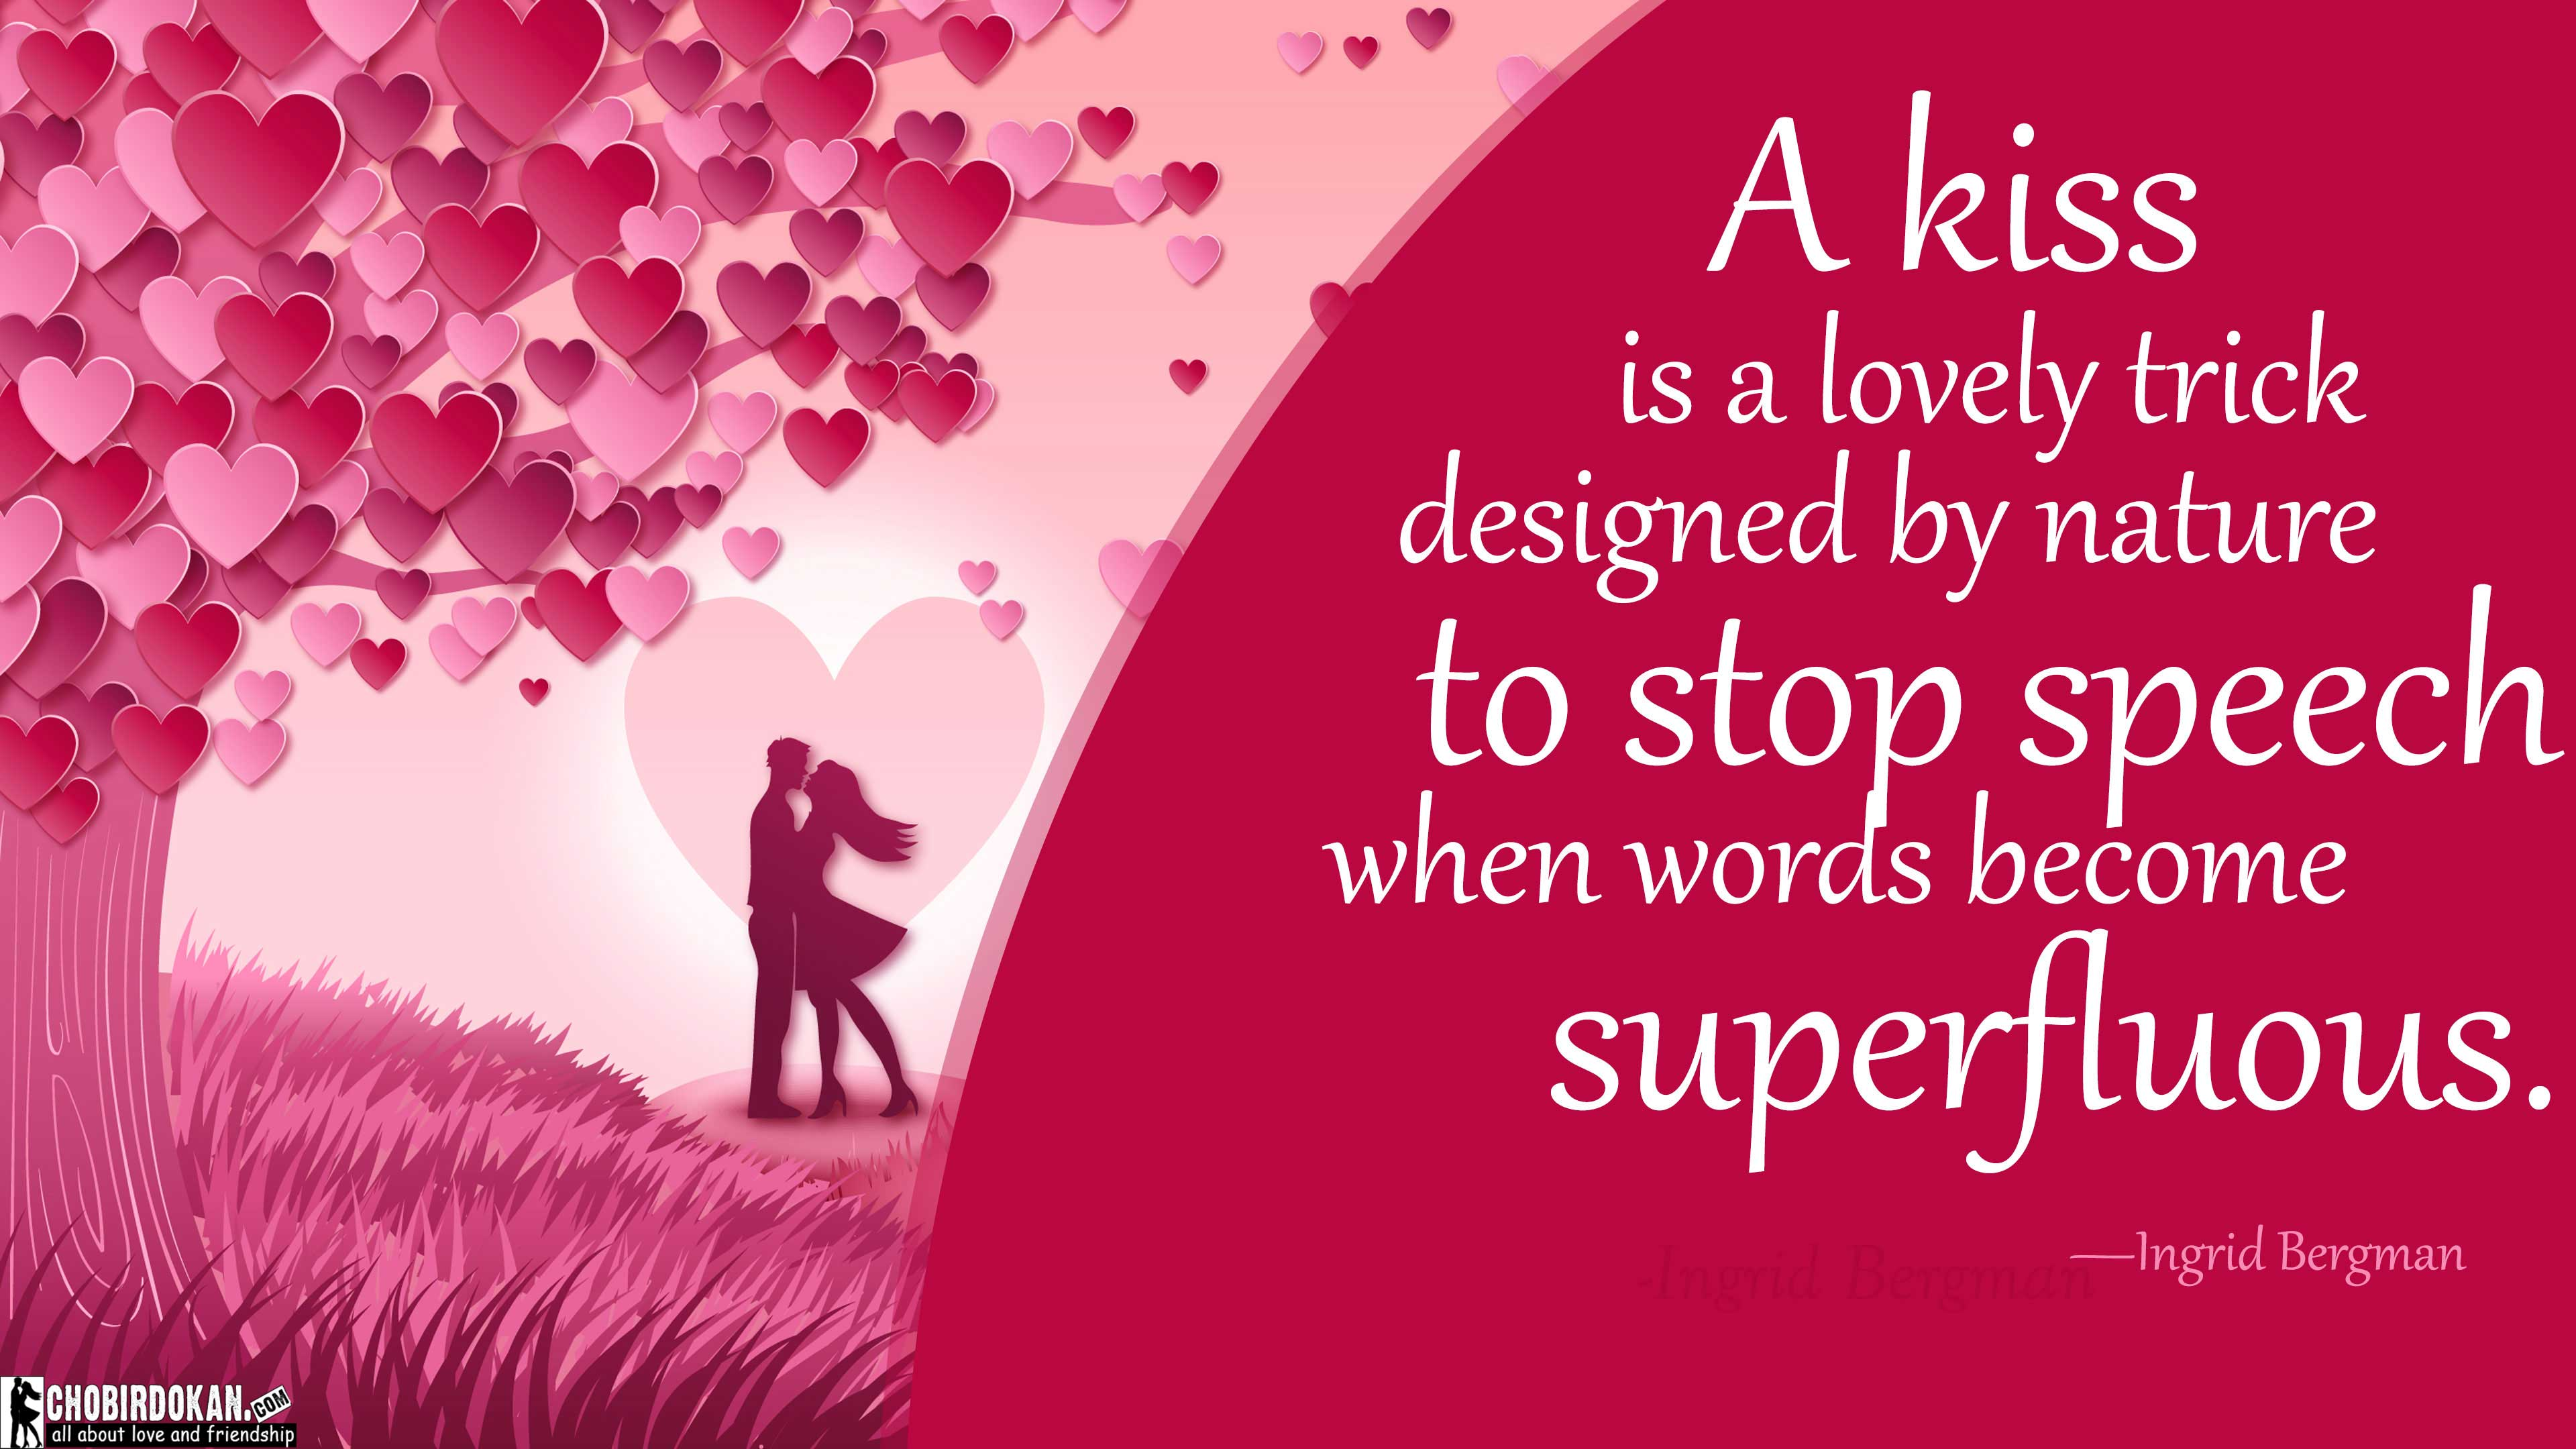 Sweet Love Quotes For Her Cute Kissing Quotes Images For Herhim Best Love Kiss Quotes